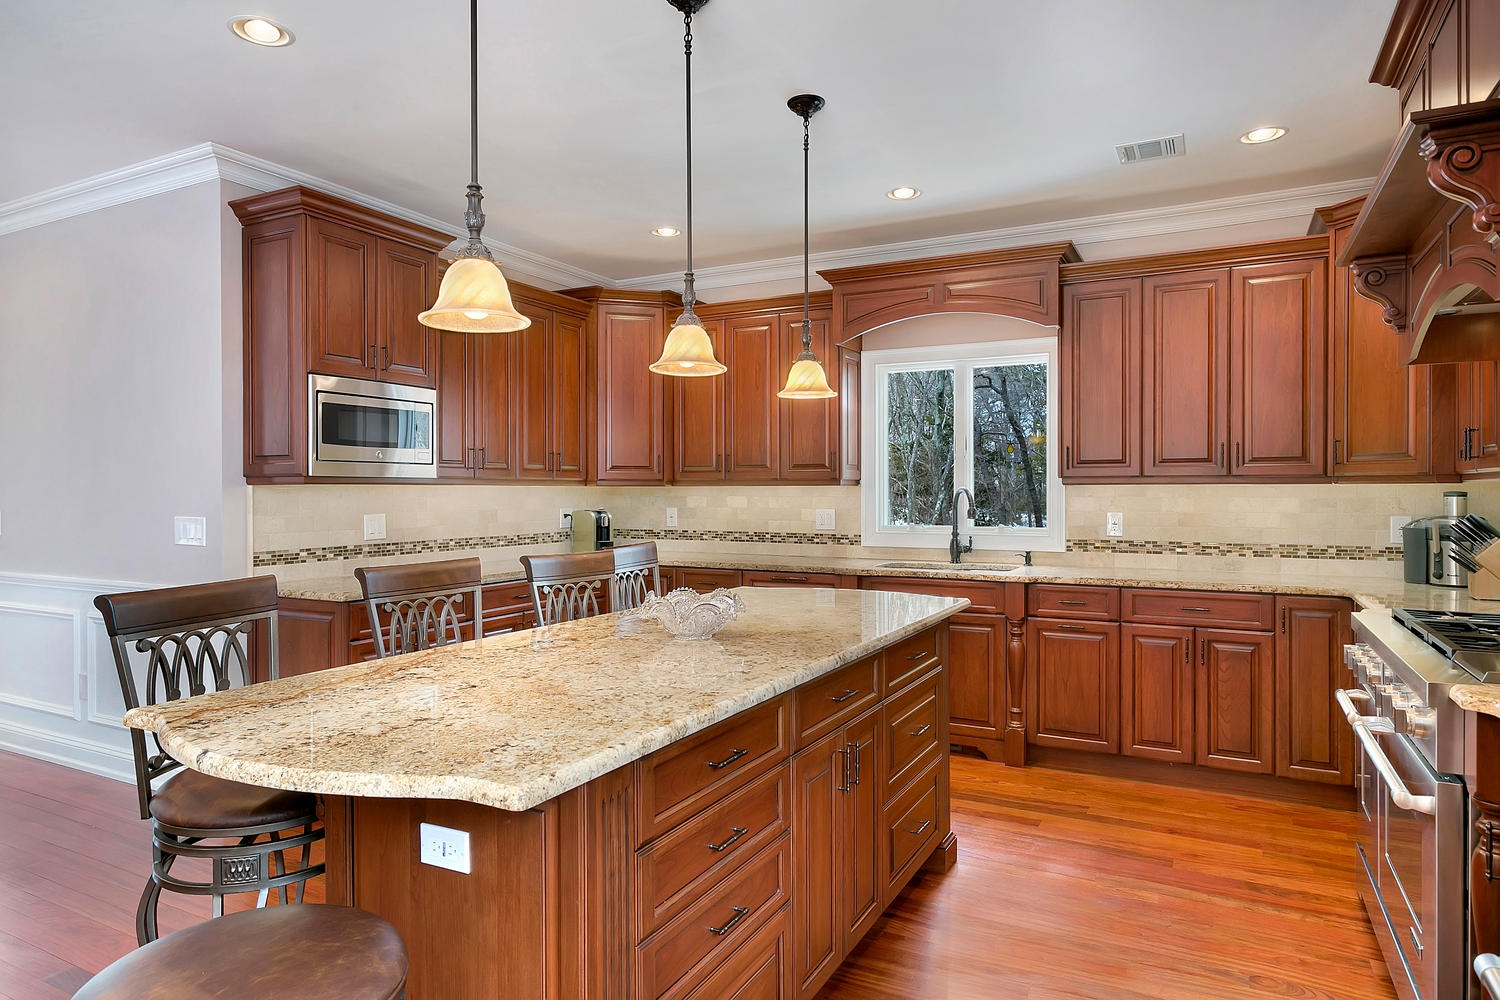 Kitchen Cabinets Hamilton Njkitchen remodeling photos design line kitchens designing with